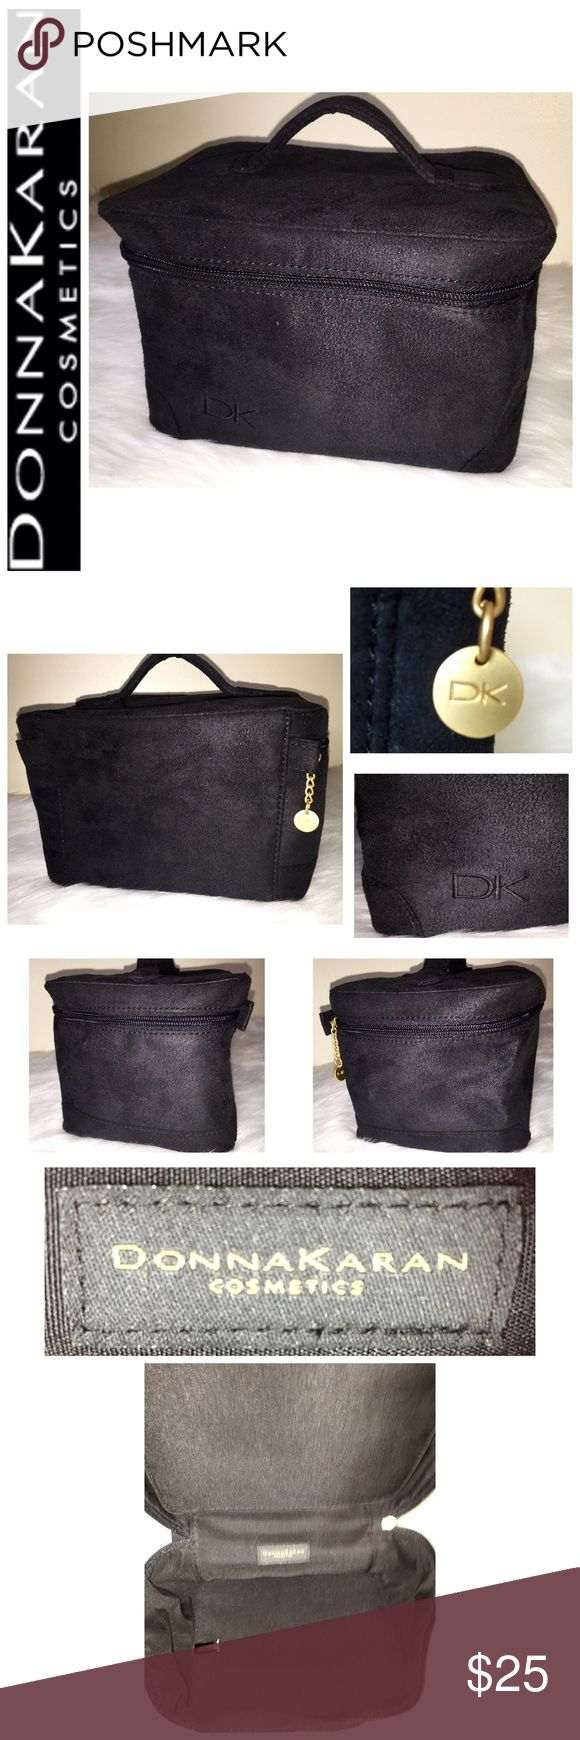 """Donna Karan Signature Travel Cosmetic Bag Donna Karan Signature Travel Cosmetic Bag, Beautiful Black Faux Suede Leather with Gold Tone Hardware, Very Spacious for All your Toiletries, Approx. Size is: 8""""x 4 1/2""""x 6"""", NWOT! DKNY Bags Cosmetic Bags & Cases"""